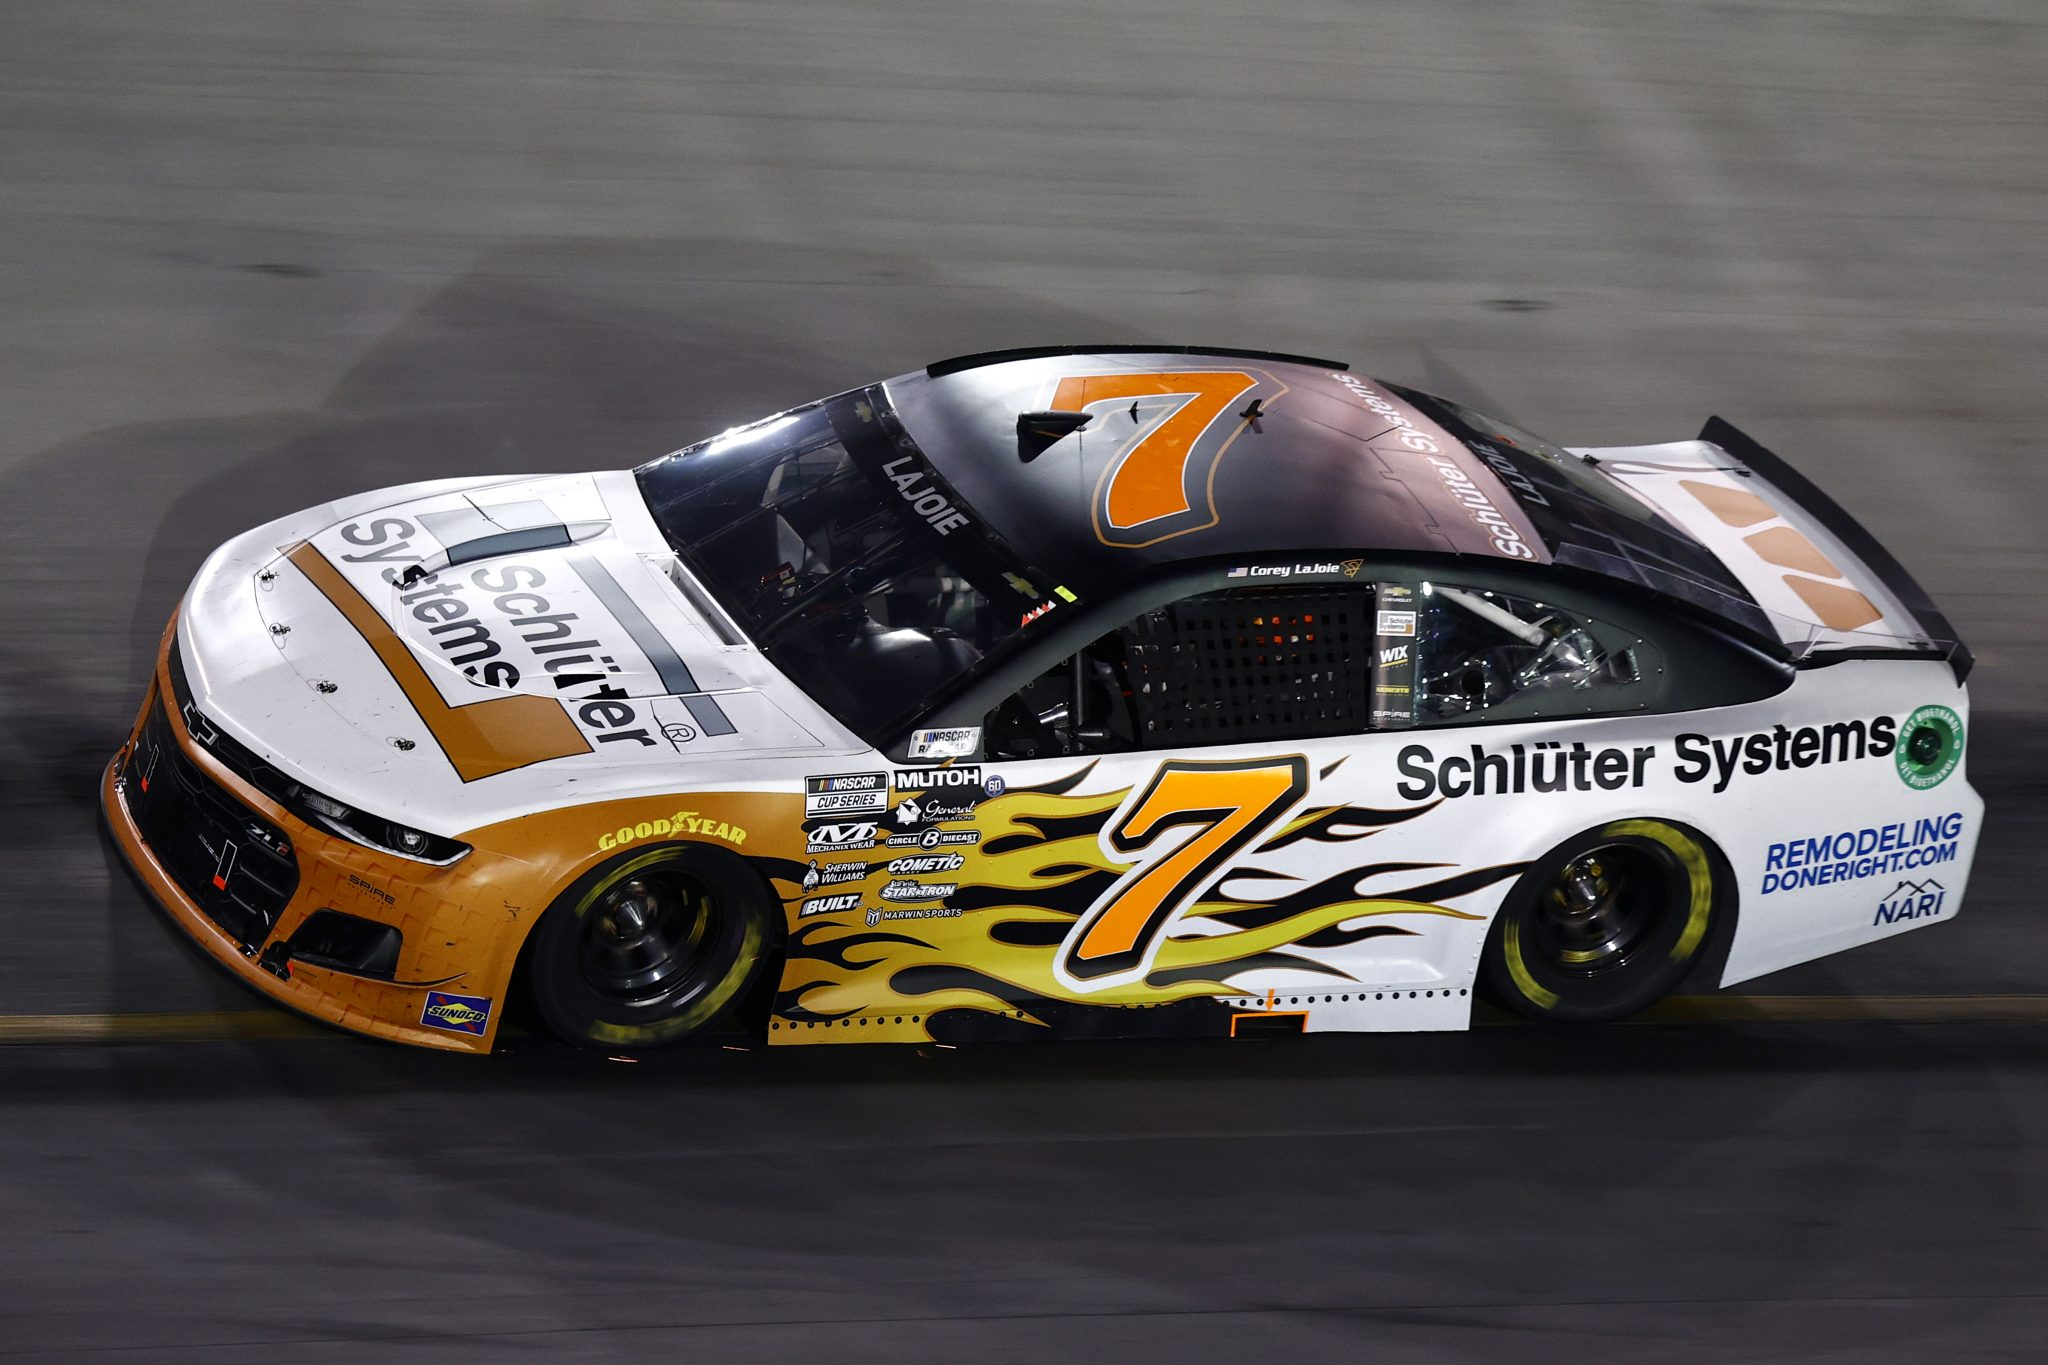 BRISTOL, TENNESSEE - SEPTEMBER 18: Corey LaJoie, driver of the #7 Schluter Systems Chevrolet, drives during the NASCAR Cup Series Bass Pro Shops Night Race at Bristol Motor Speedway on September 18, 2021 in Bristol, Tennessee. (Photo by Jared C. Tilton/Getty Images)   Getty Images